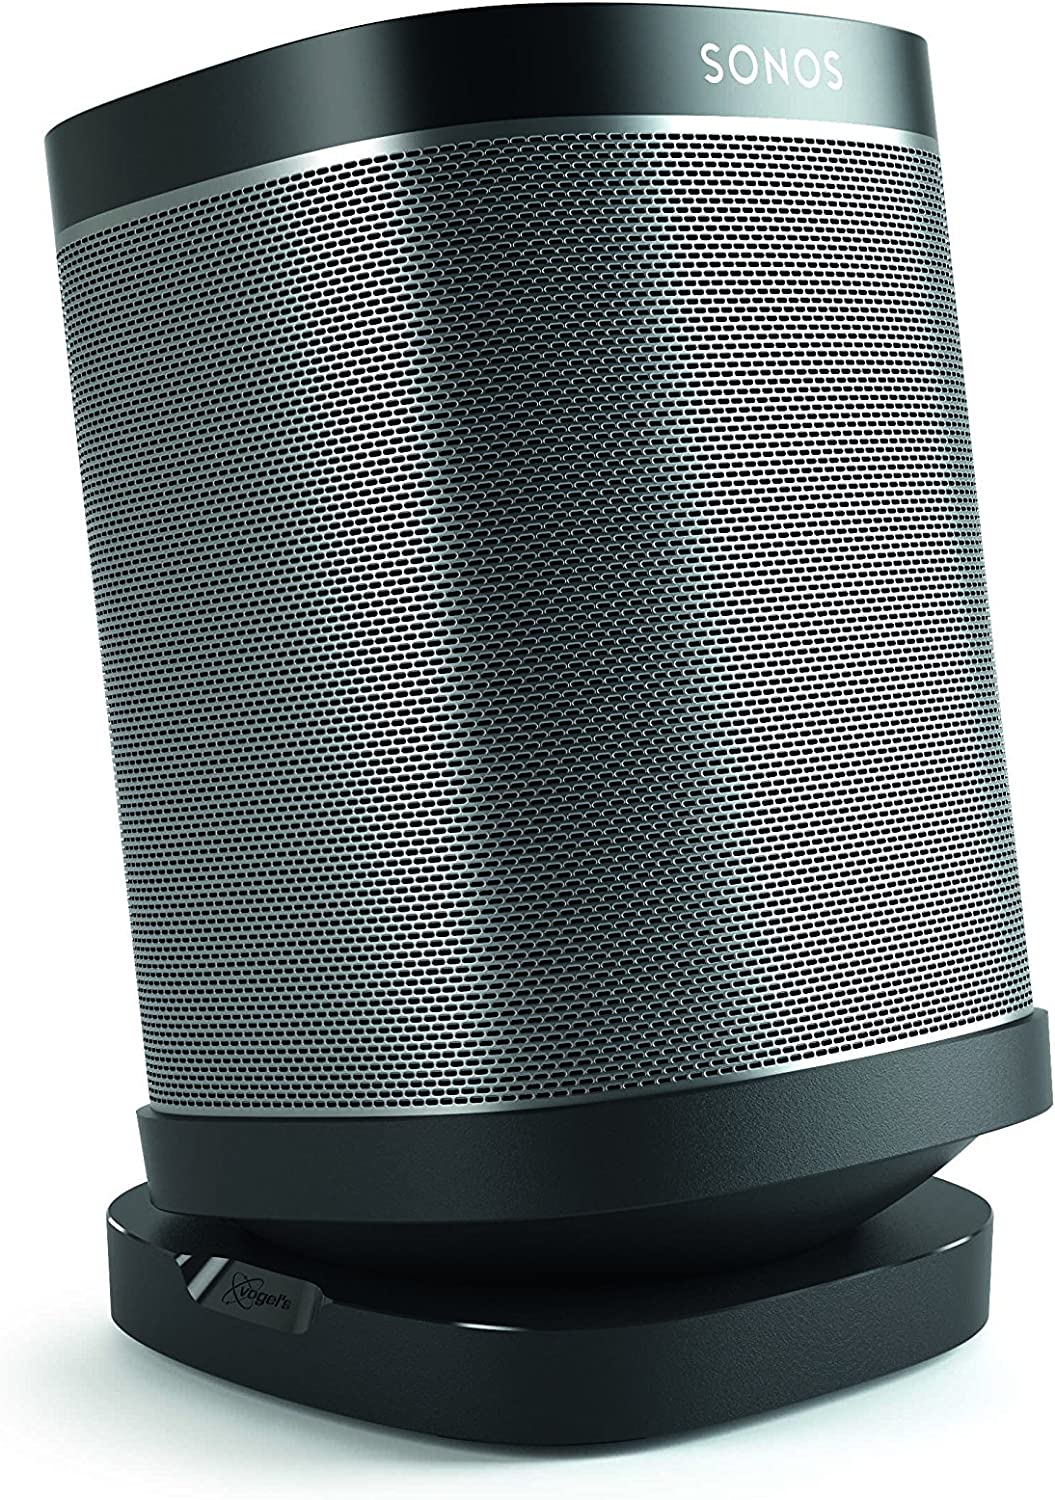 Vogel's Speaker Table Top Stand for SONOS Play - SOUND 4113 B Mount for SONOS One, Play 1 & 3, Black (Single stand)